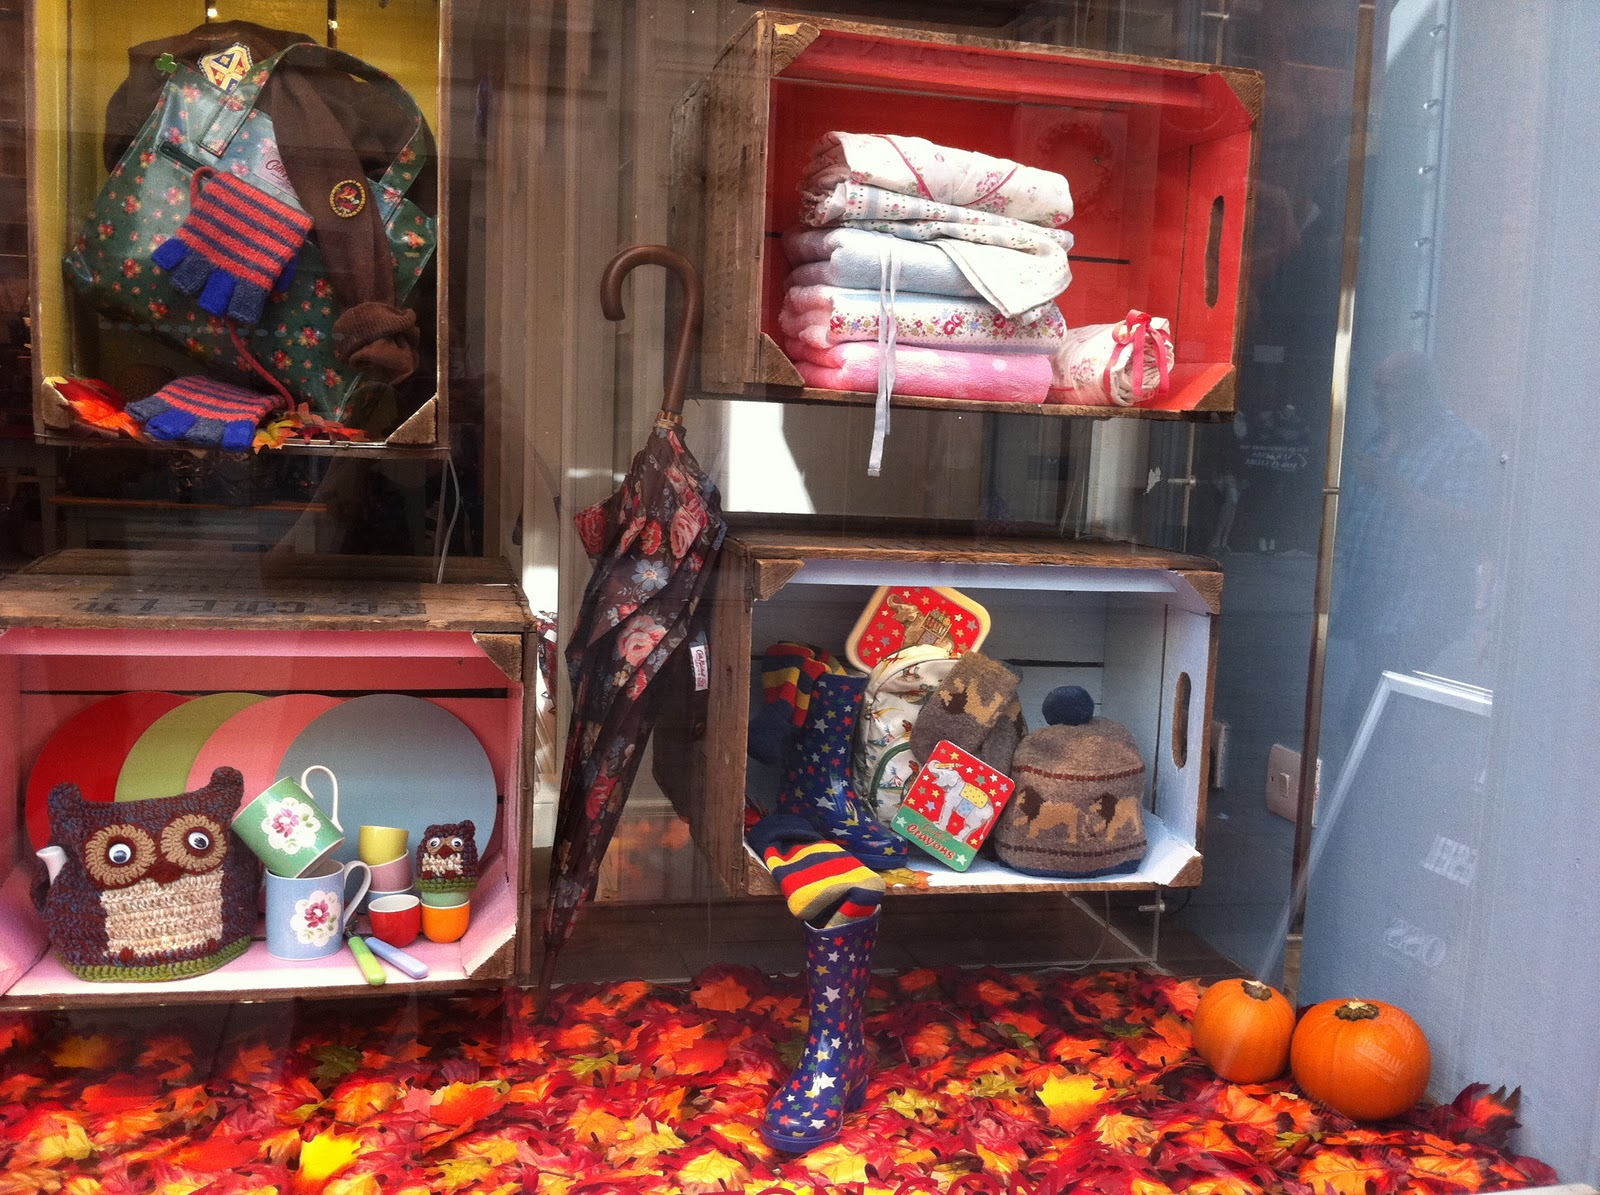 Cute autumn clothes for kids, a few colored leaves and two little pumpkins have decorated this window display.